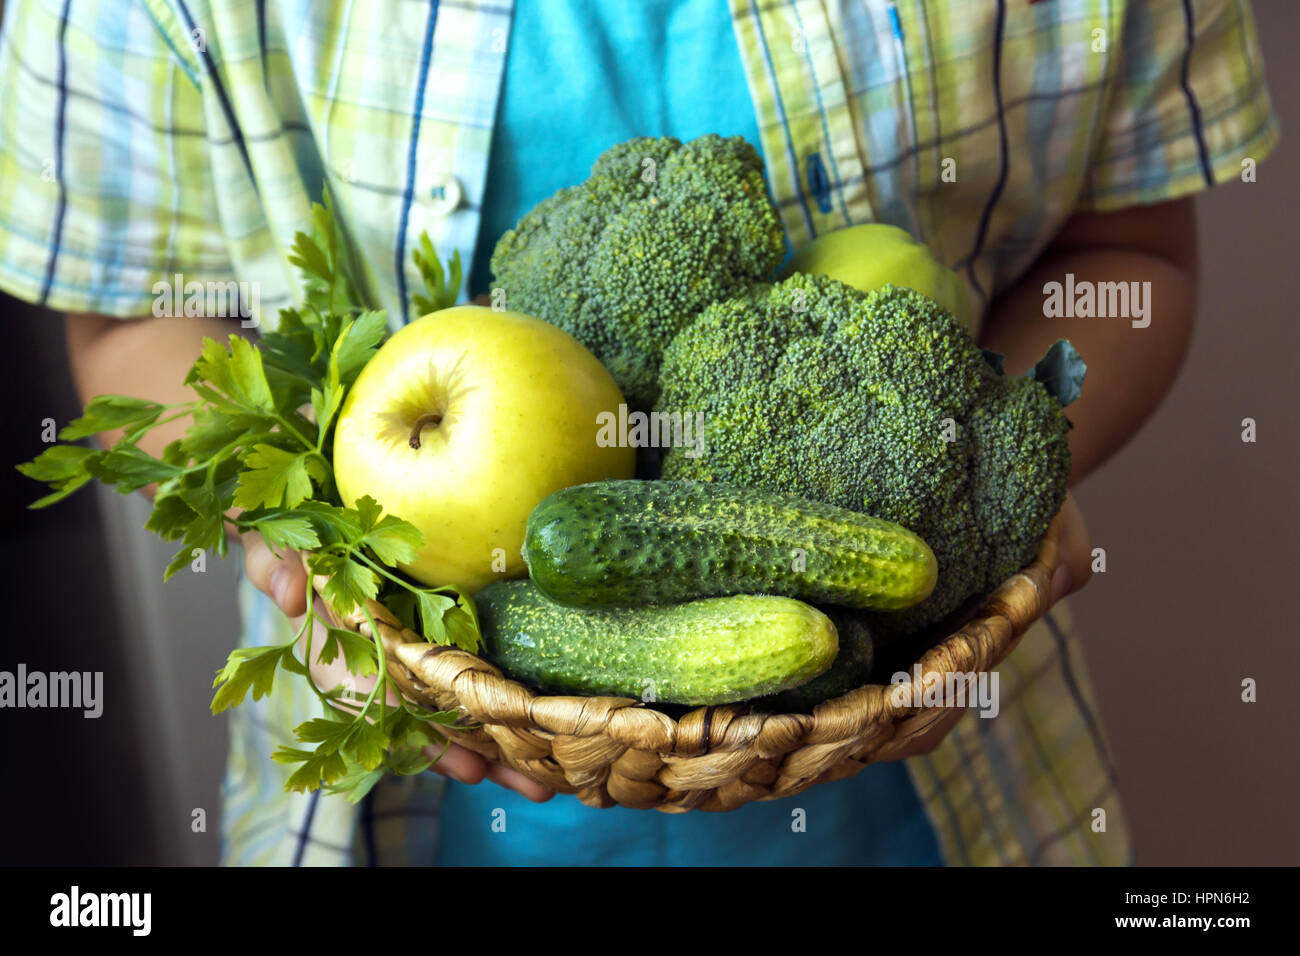 Person (hands) hold basket with organic green vegetables (broccoli, cucumbers, apple and parsley) - healthy organic - Stock Image